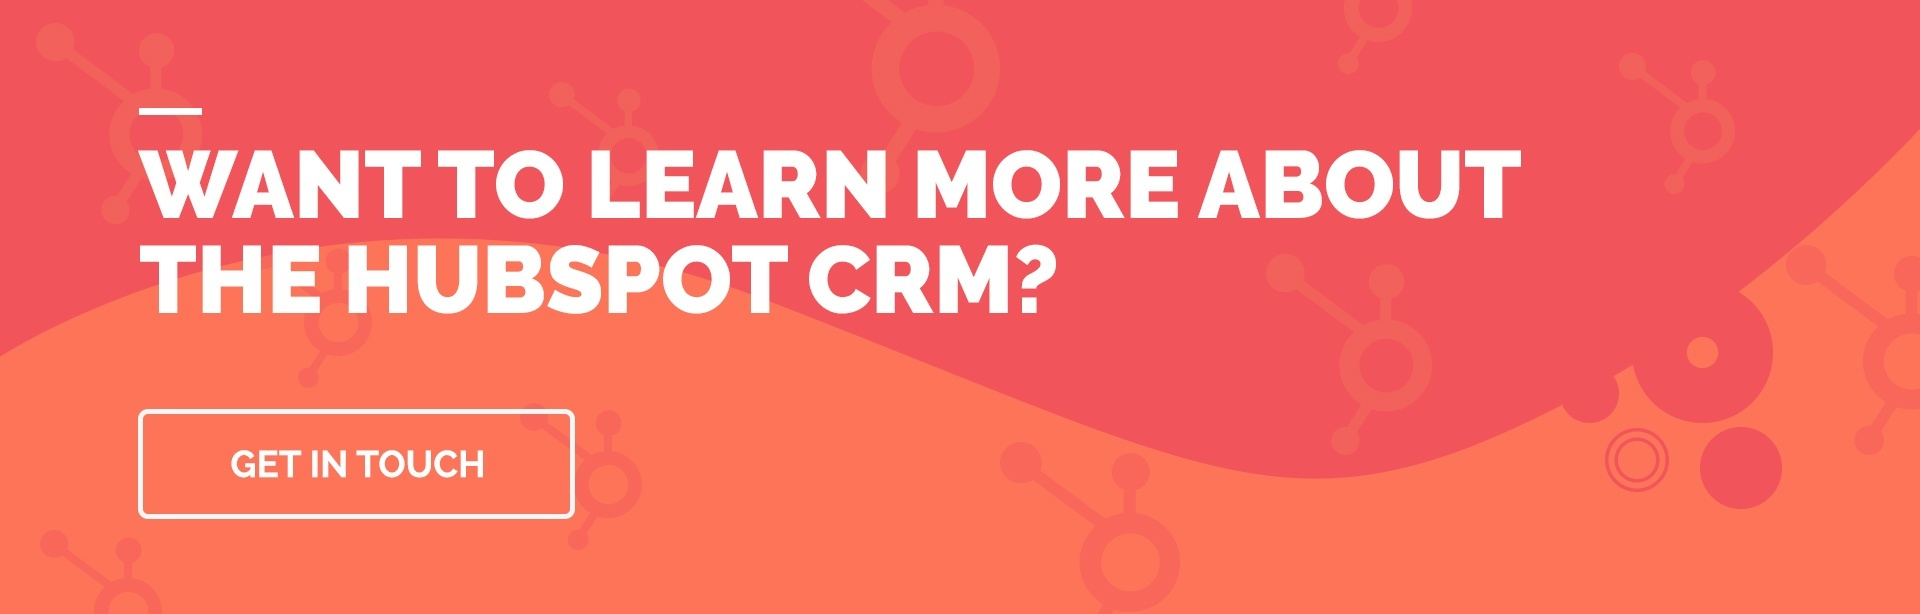 Learn more about the HubSpot CRM - Contact Us